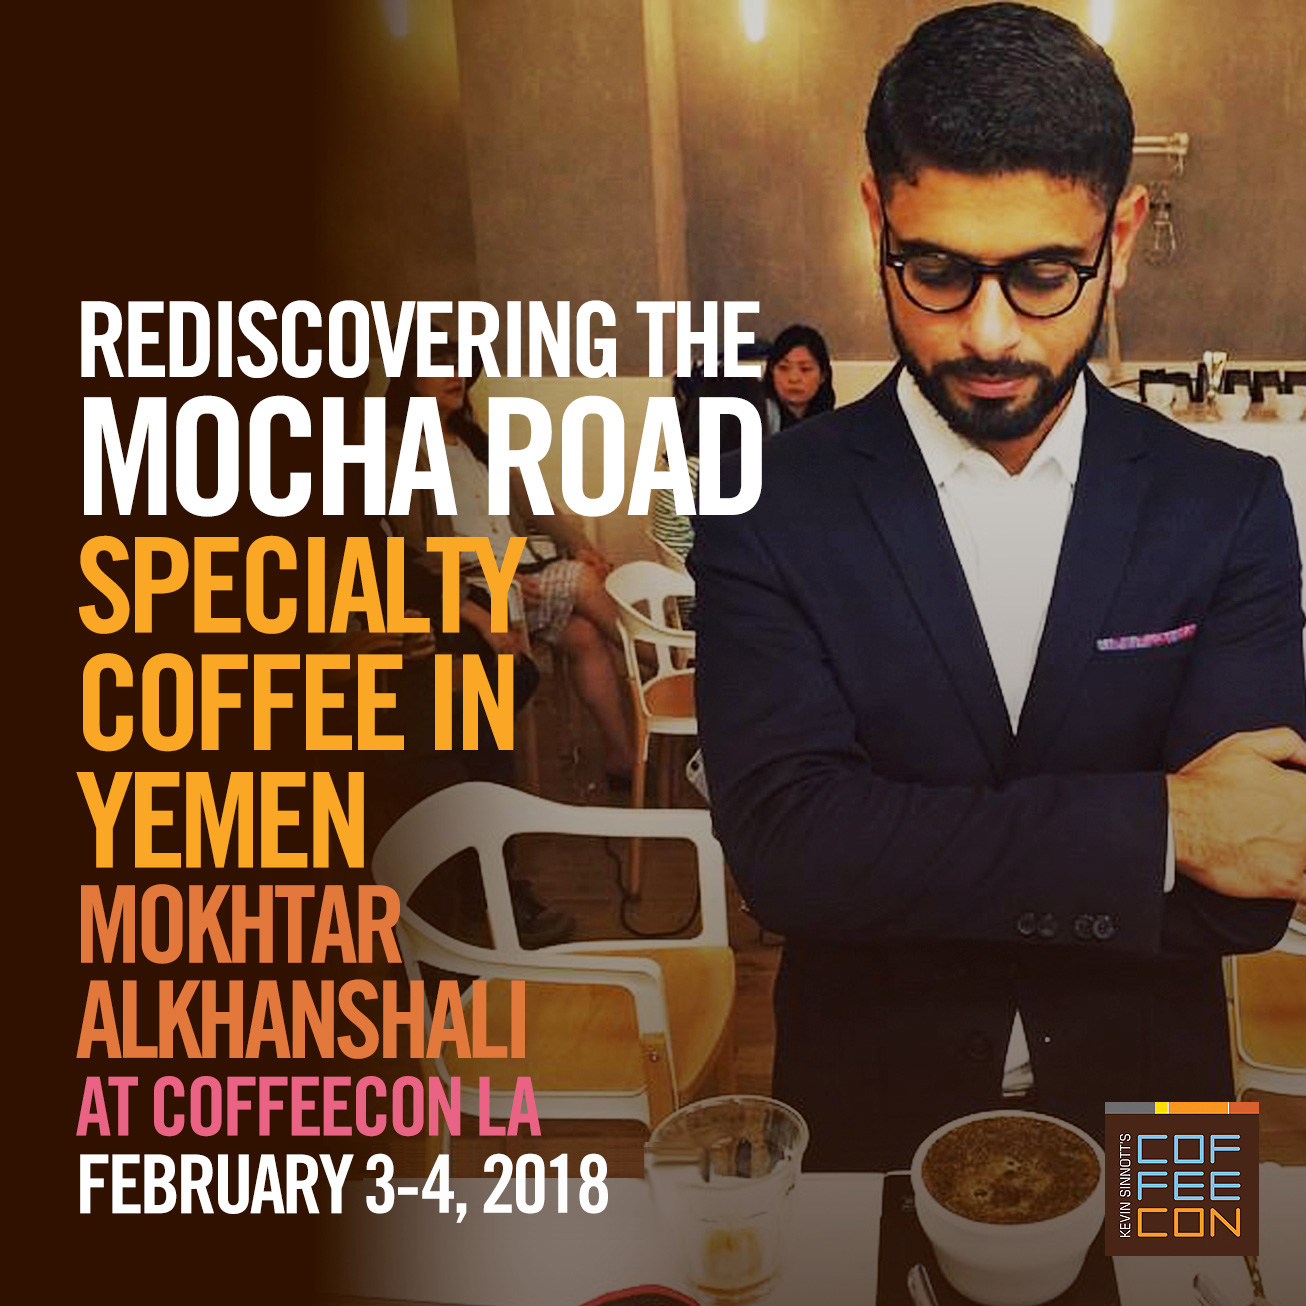 The Road to Mocha: Rediscovering Yemen with Mokhtar Alkhanshali at CoffeeConLA 2018